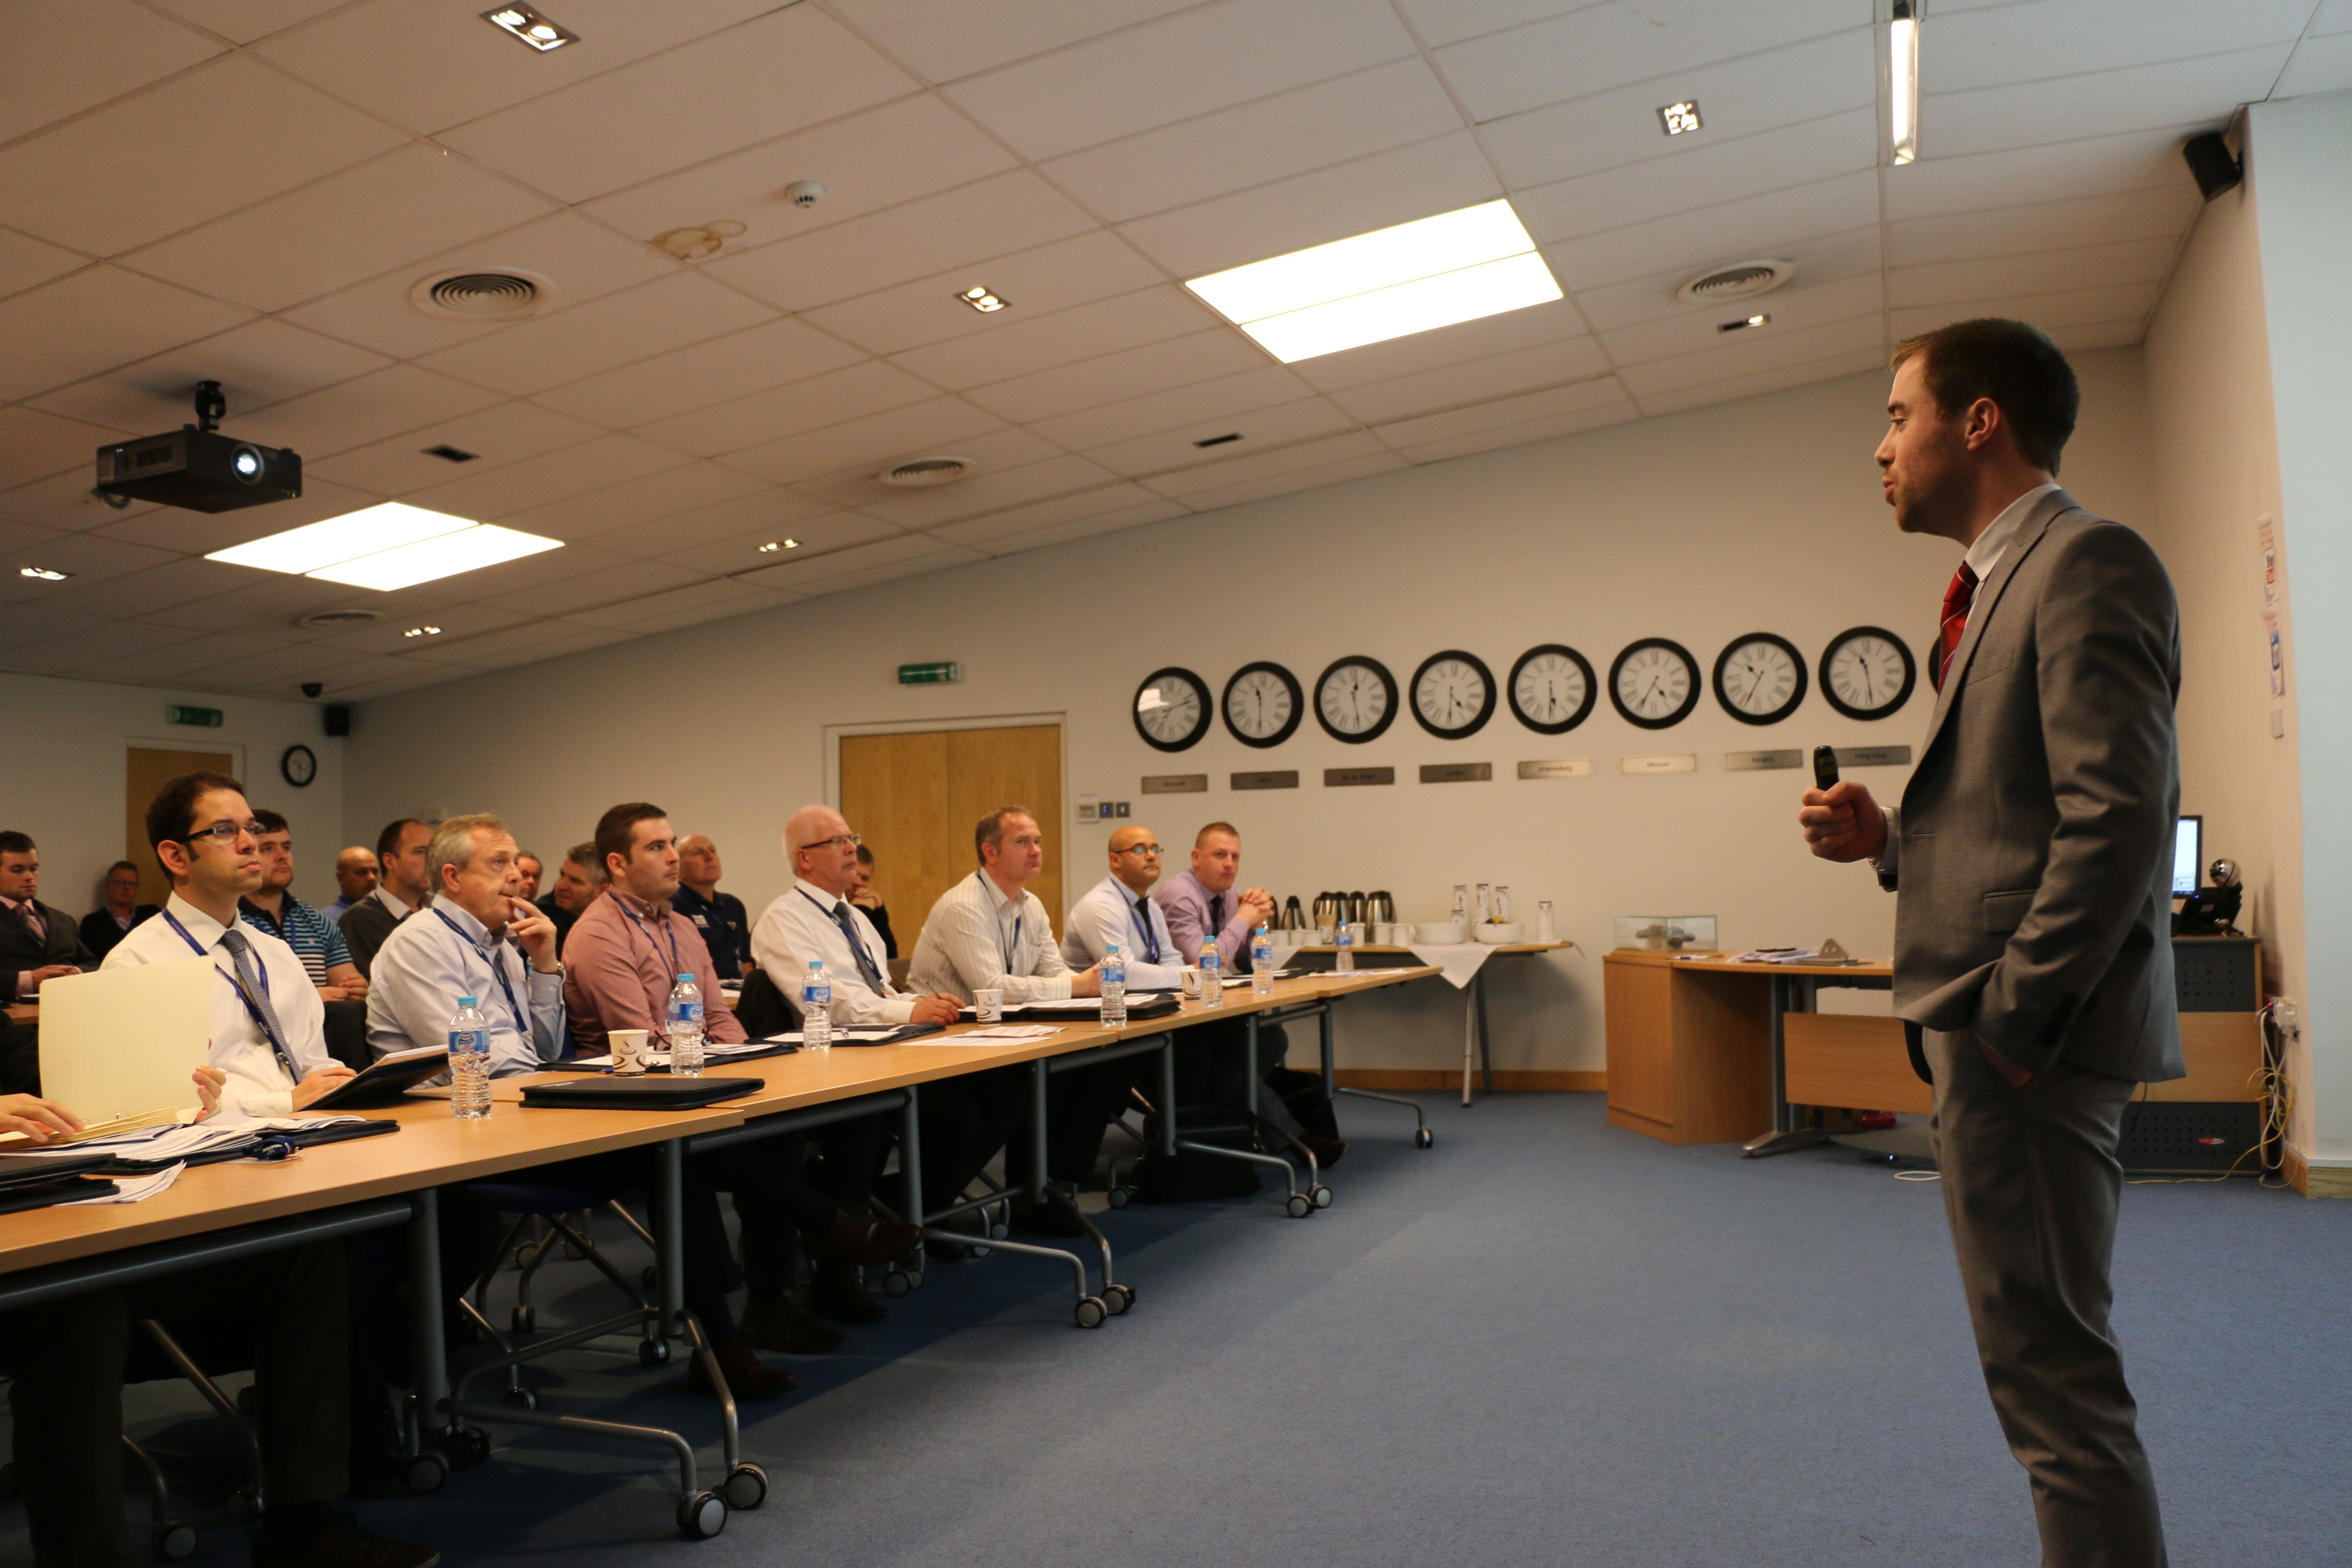 Technical Sales personnel deliver presentations about coating selection